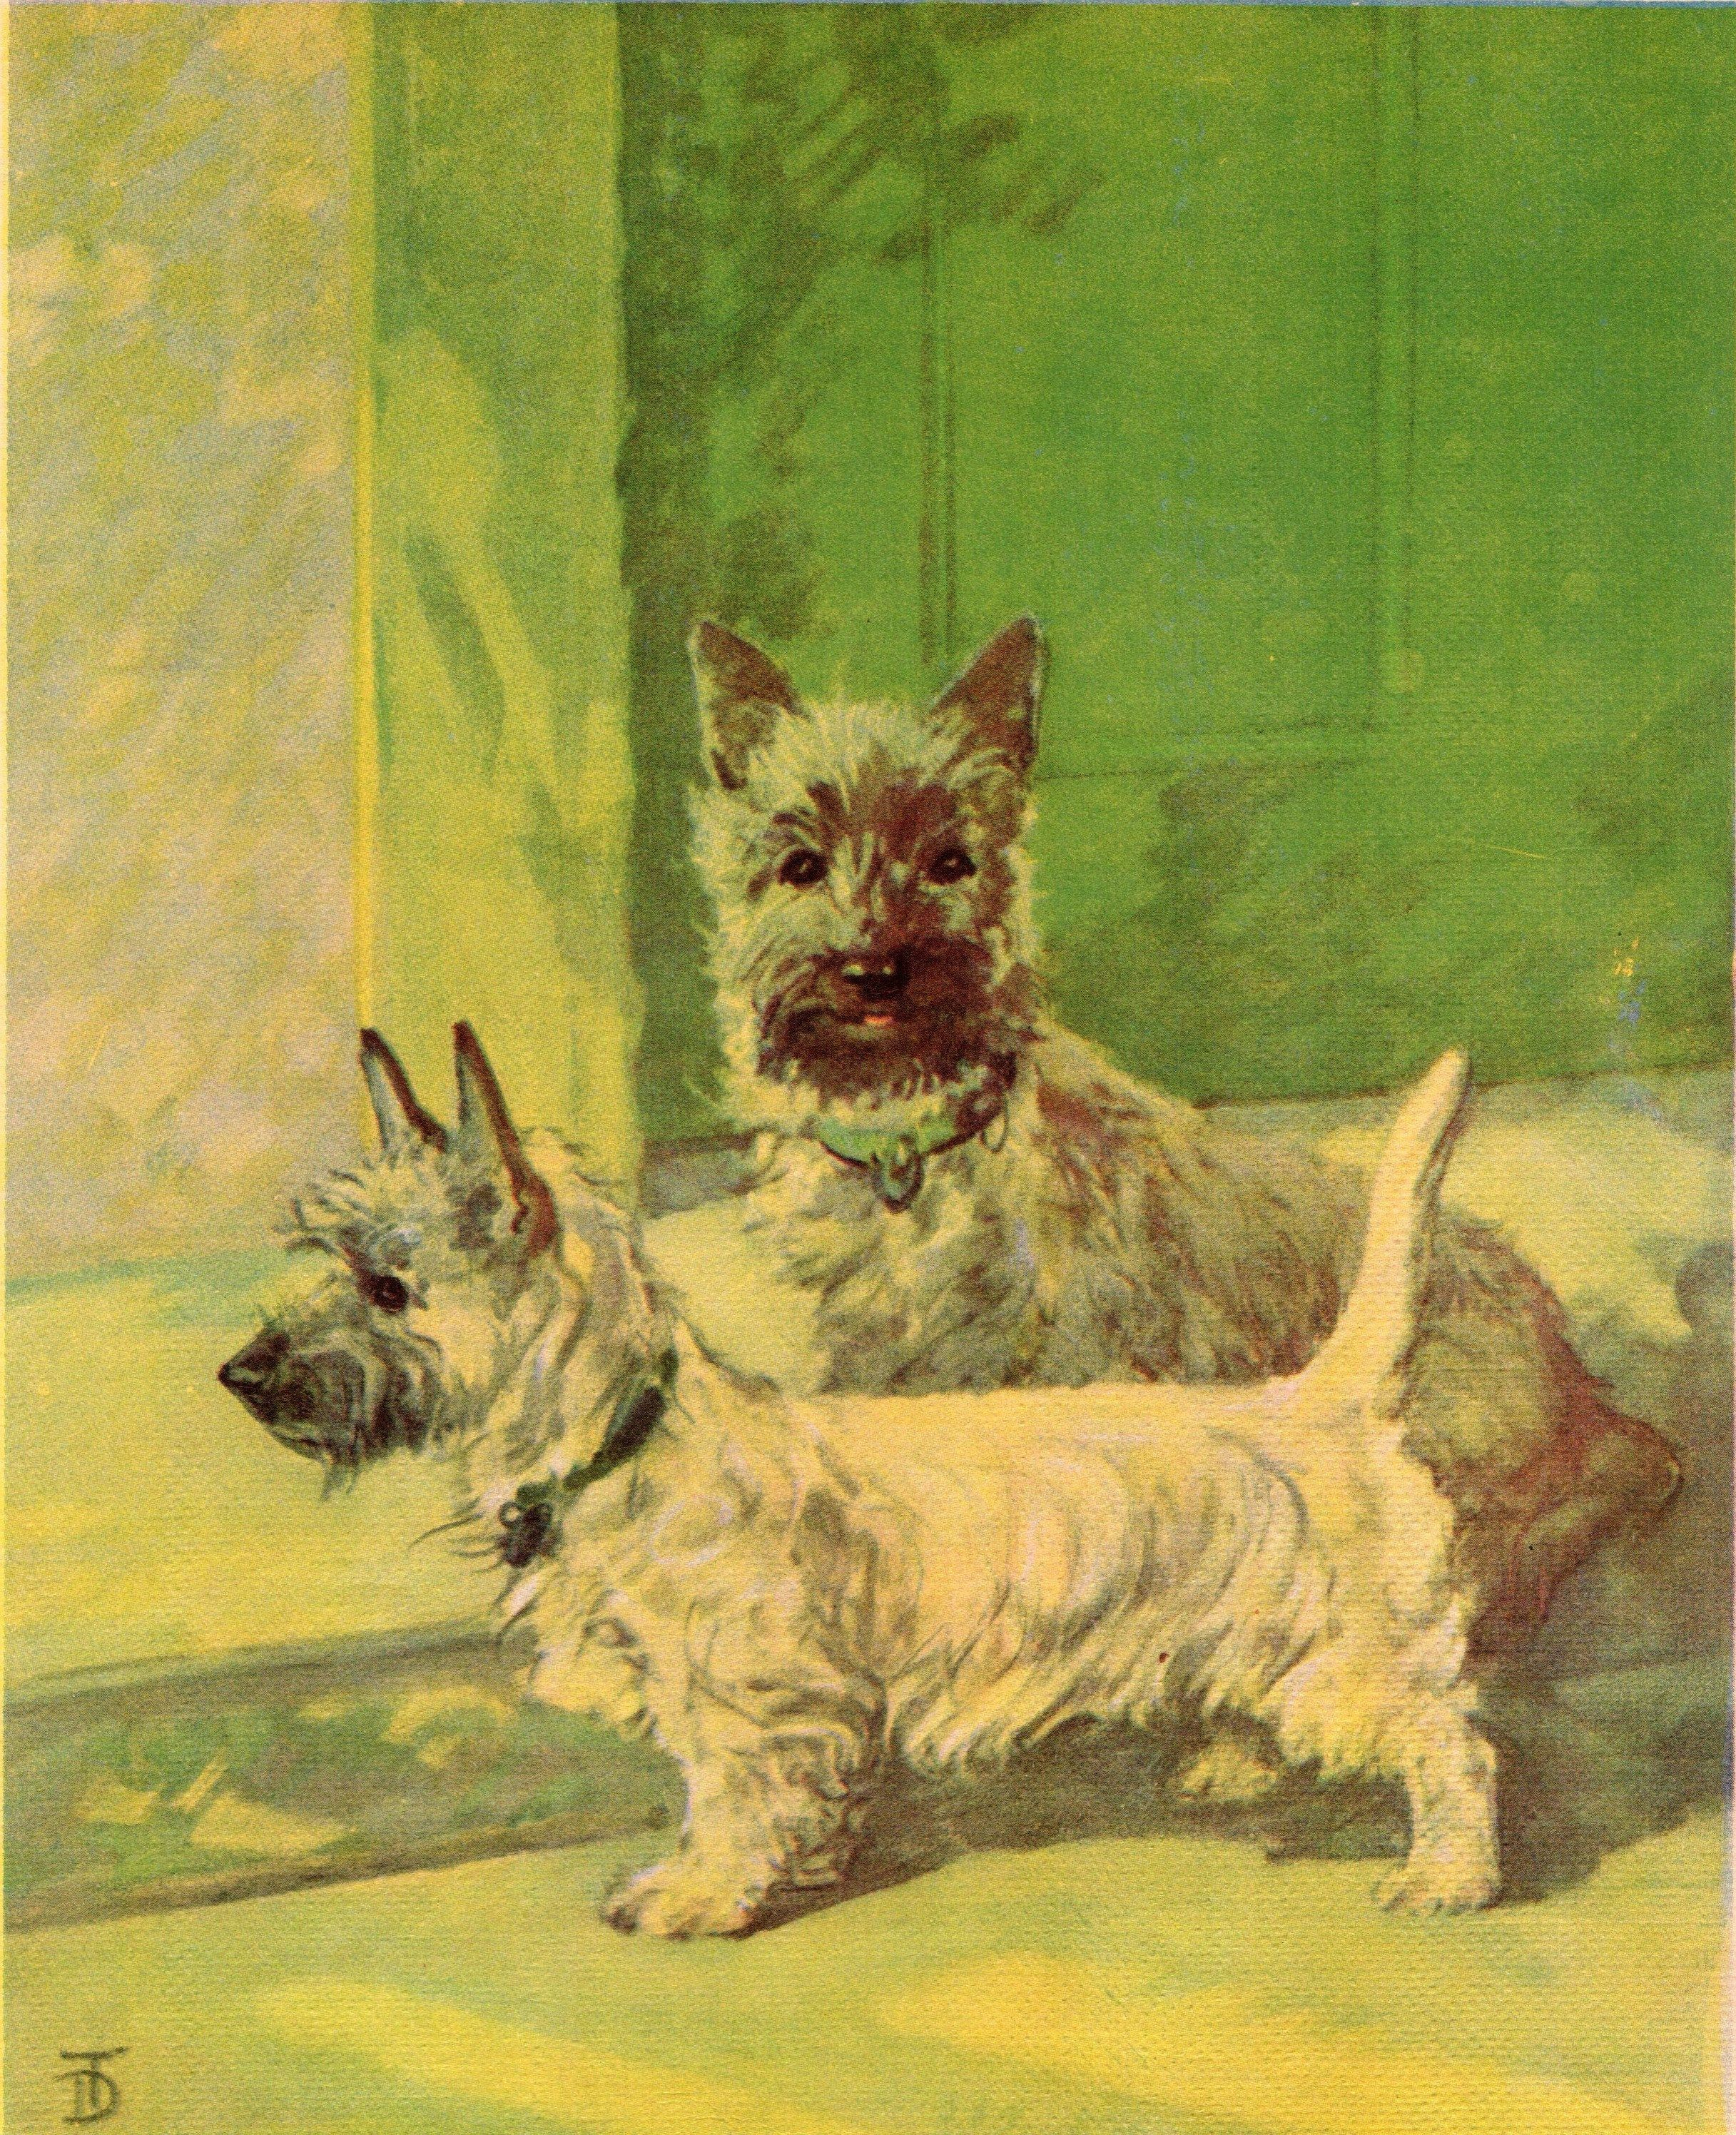 1932 Antique Cairn Terrier Dog Print Twin Cairn Terrier Puppy Art